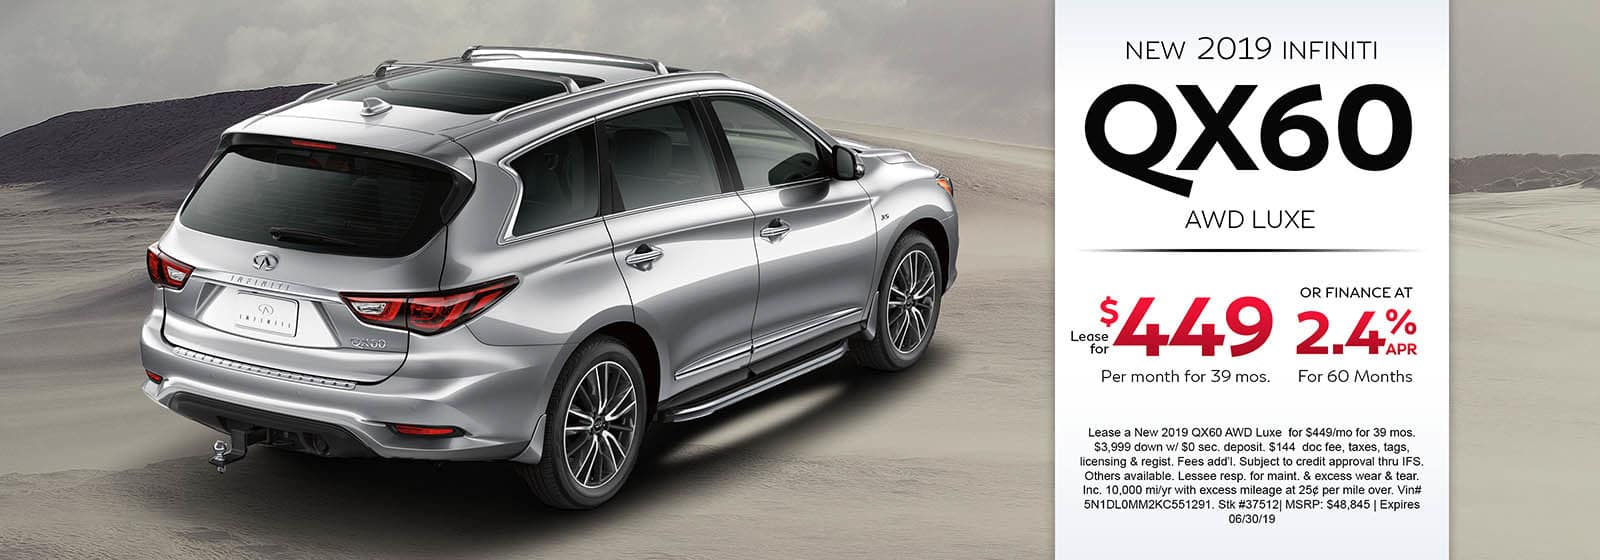 2019 QX60 AWD LUXE Lease For $449